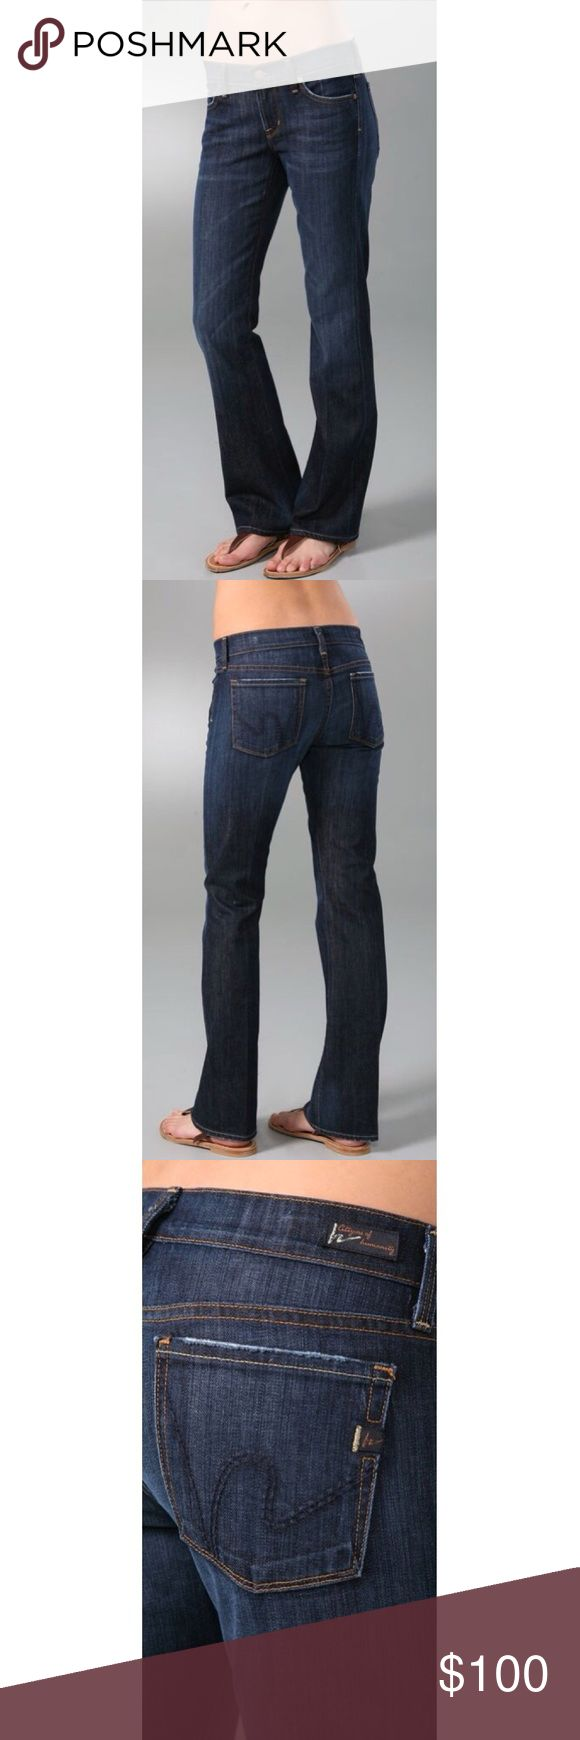 """💸BF SALE💸 Citizens of Humanity - The Dita These petite boot-cut jeans feature 5-pocket styling and a single-button closure. Tonal 'h' stitching at back pockets and whiskering at front. Worn spots at edges and mild distressing.  * 8"""" rise. 32"""" inseam. * 98% cotton/2% elastane. * Wash cold. * Made in the U.S.A. Citizens Of Humanity Jeans Boot Cut"""